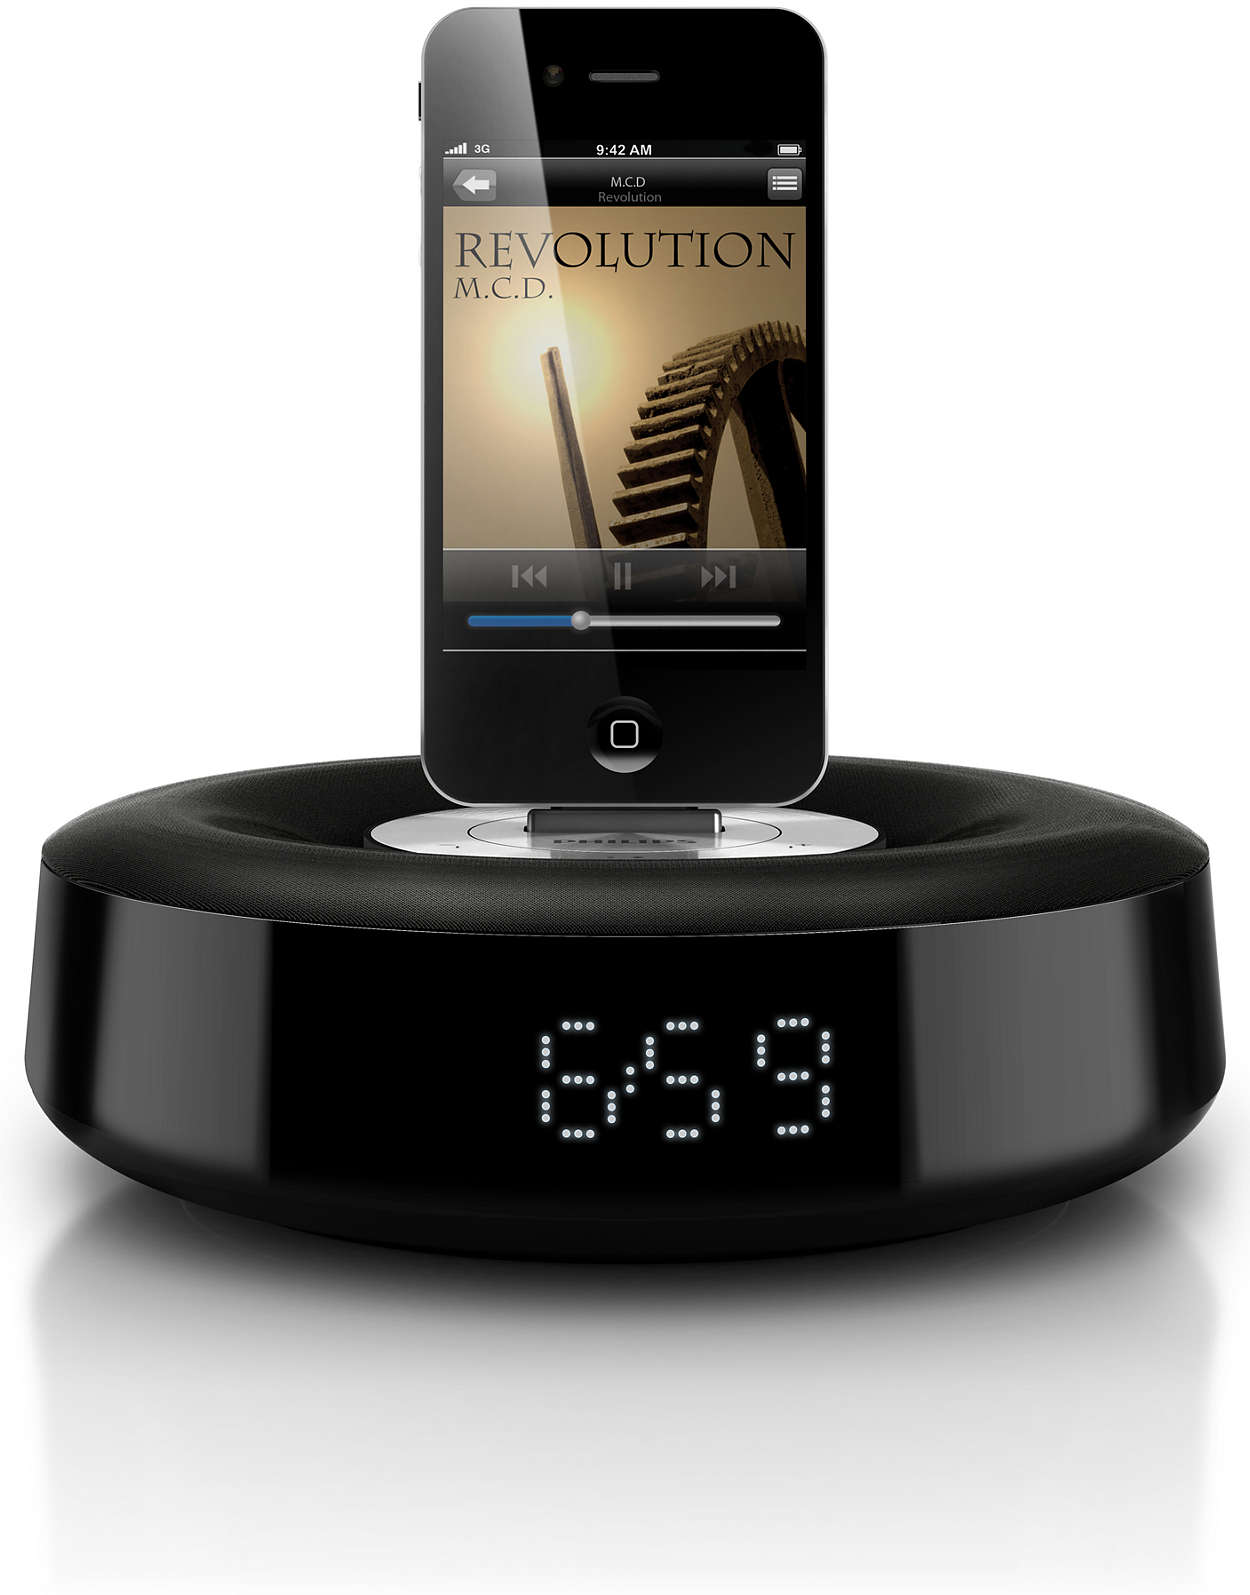 Fill your bedroom with music and style